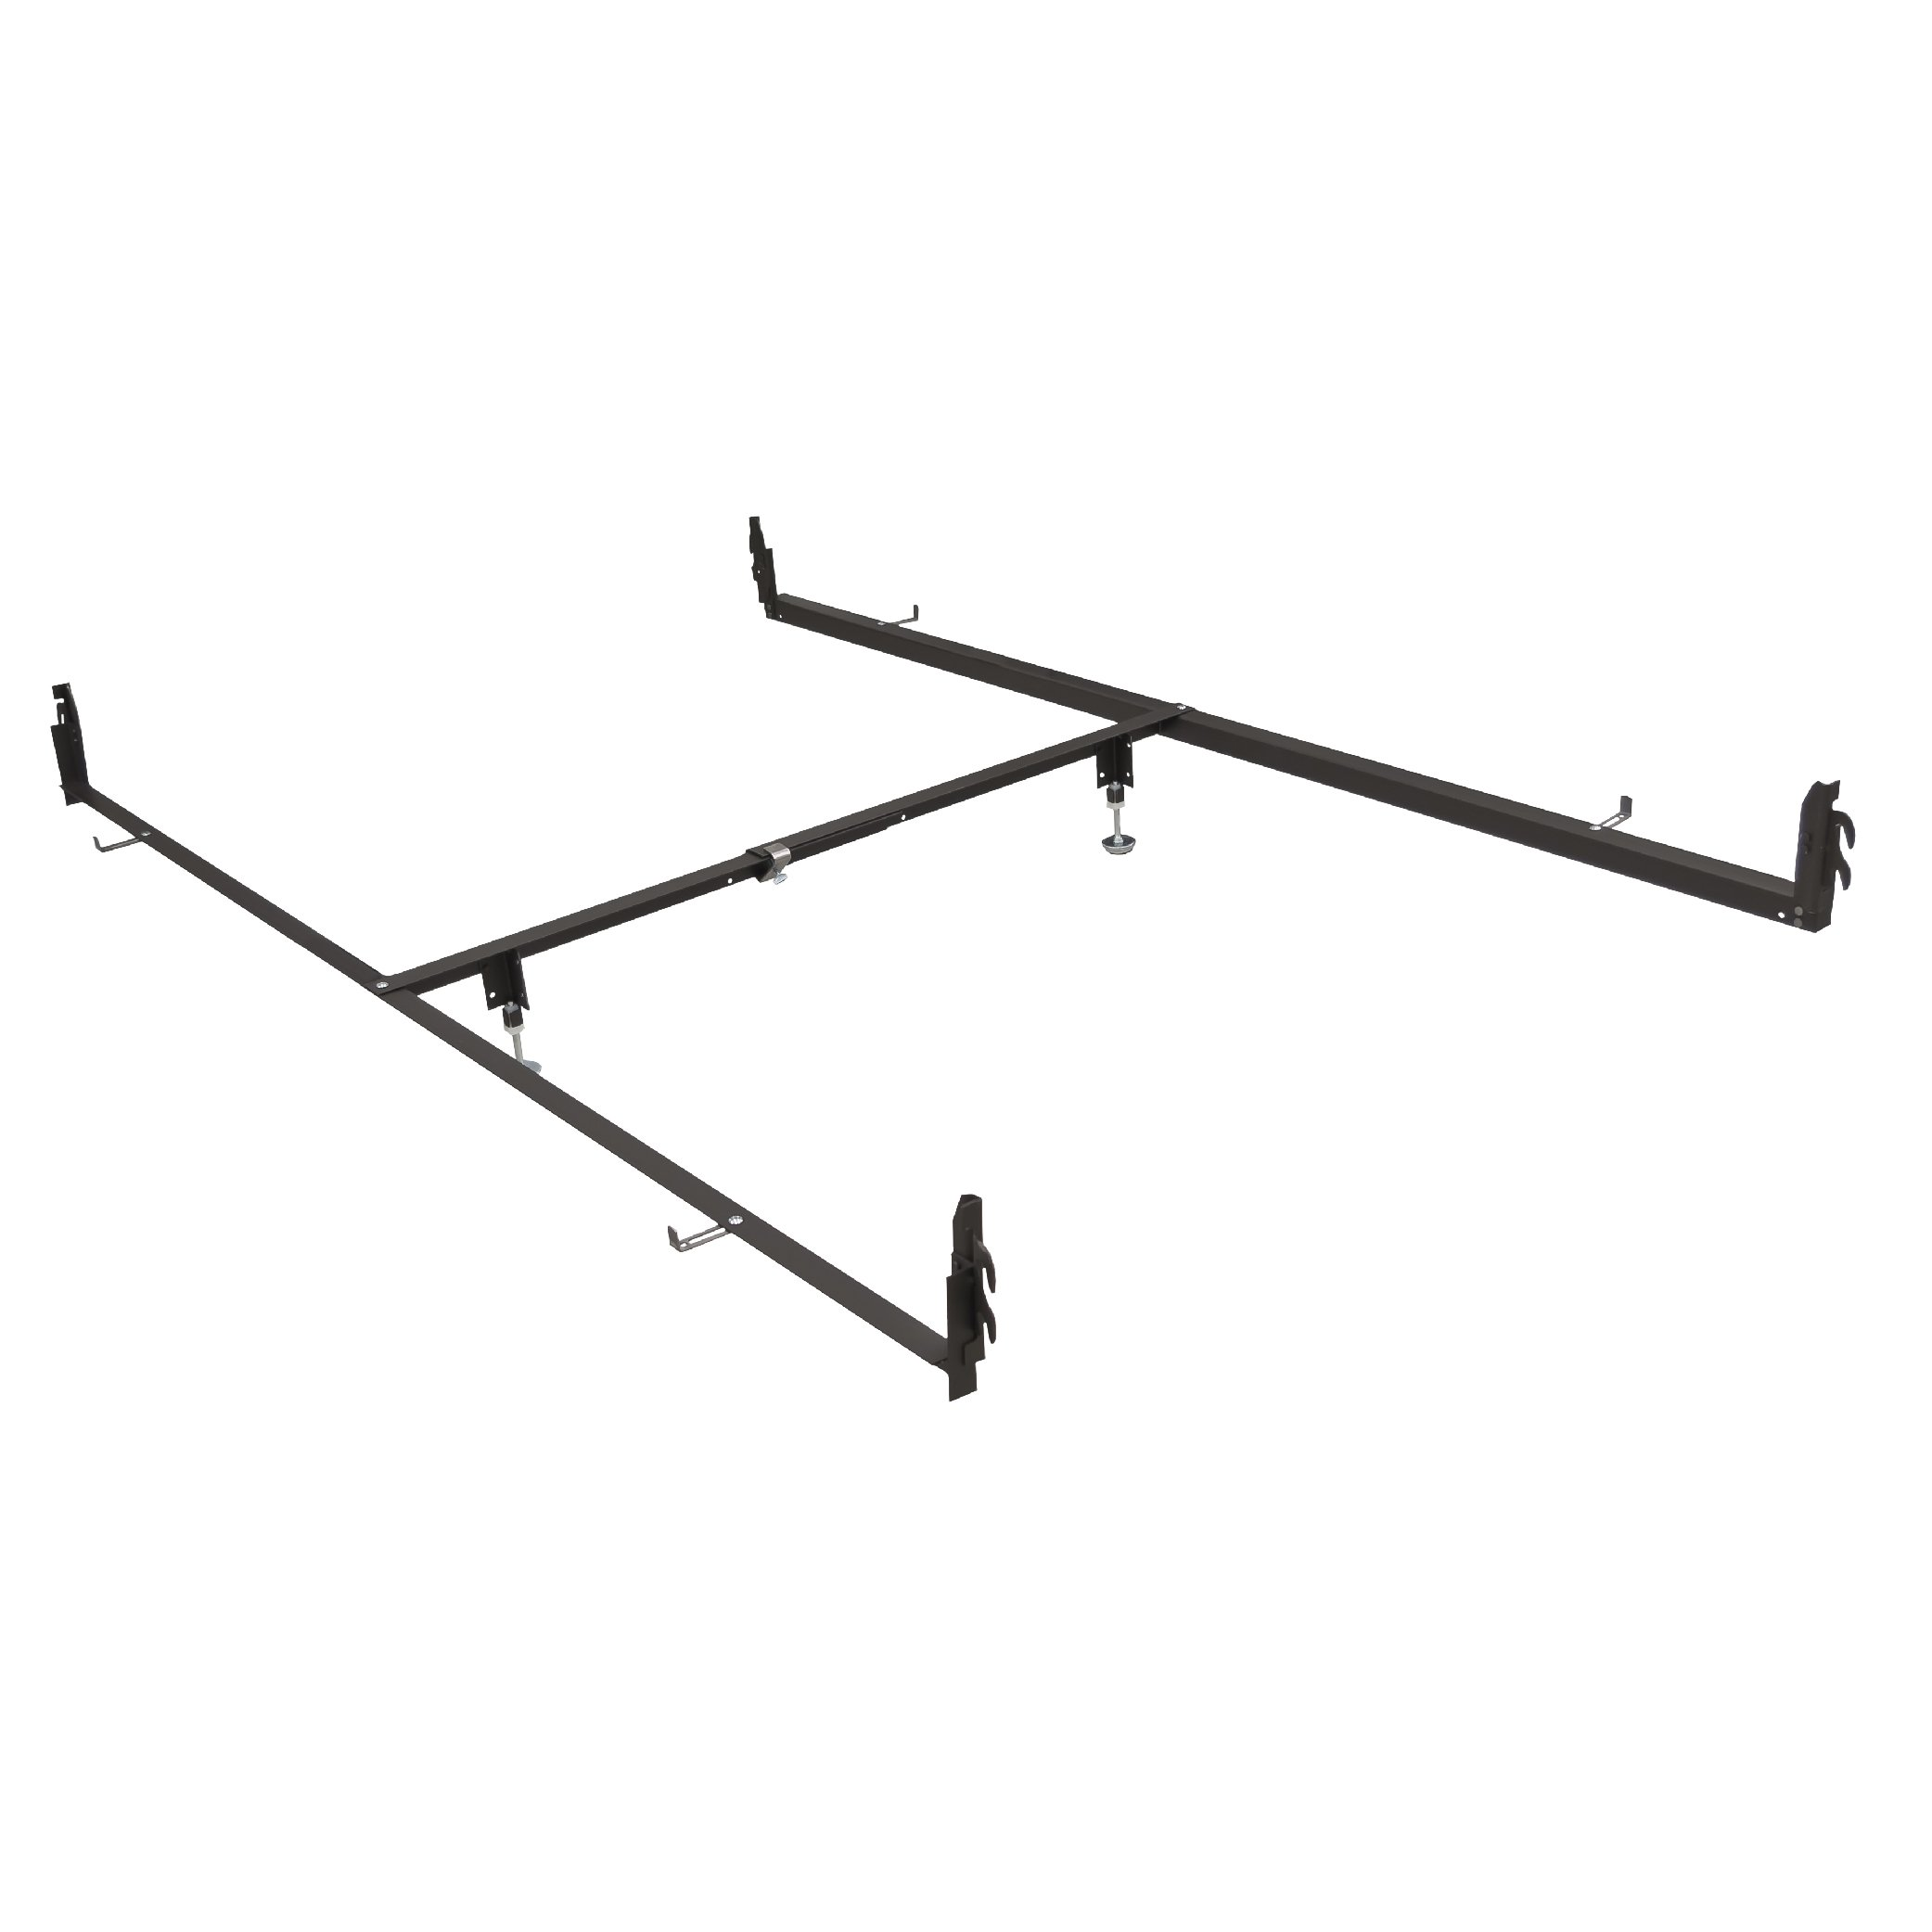 Glideaway DRCV1L Bed Rail System - Adjustable Steel Drop Rail Kit to Convert Full Size Beds to Fit Queen Size Mattresses - Suitable For Antique Beds - Hook-in Attachments by Glideaway